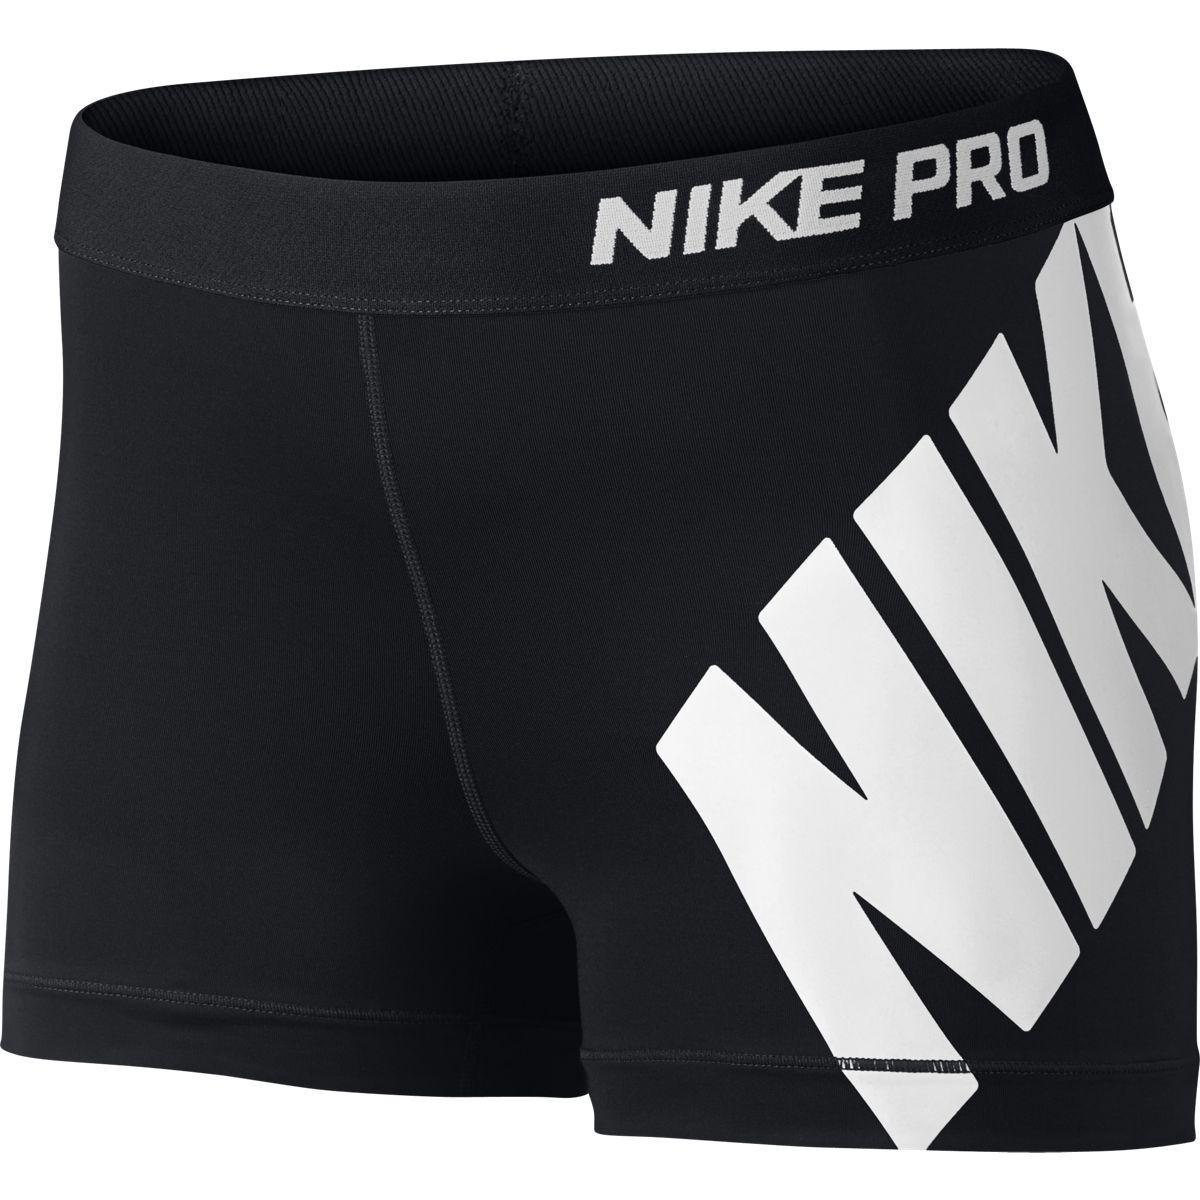 Creative Nike Pro 25quot Compression Shorts  Women39s  Training  Clothing